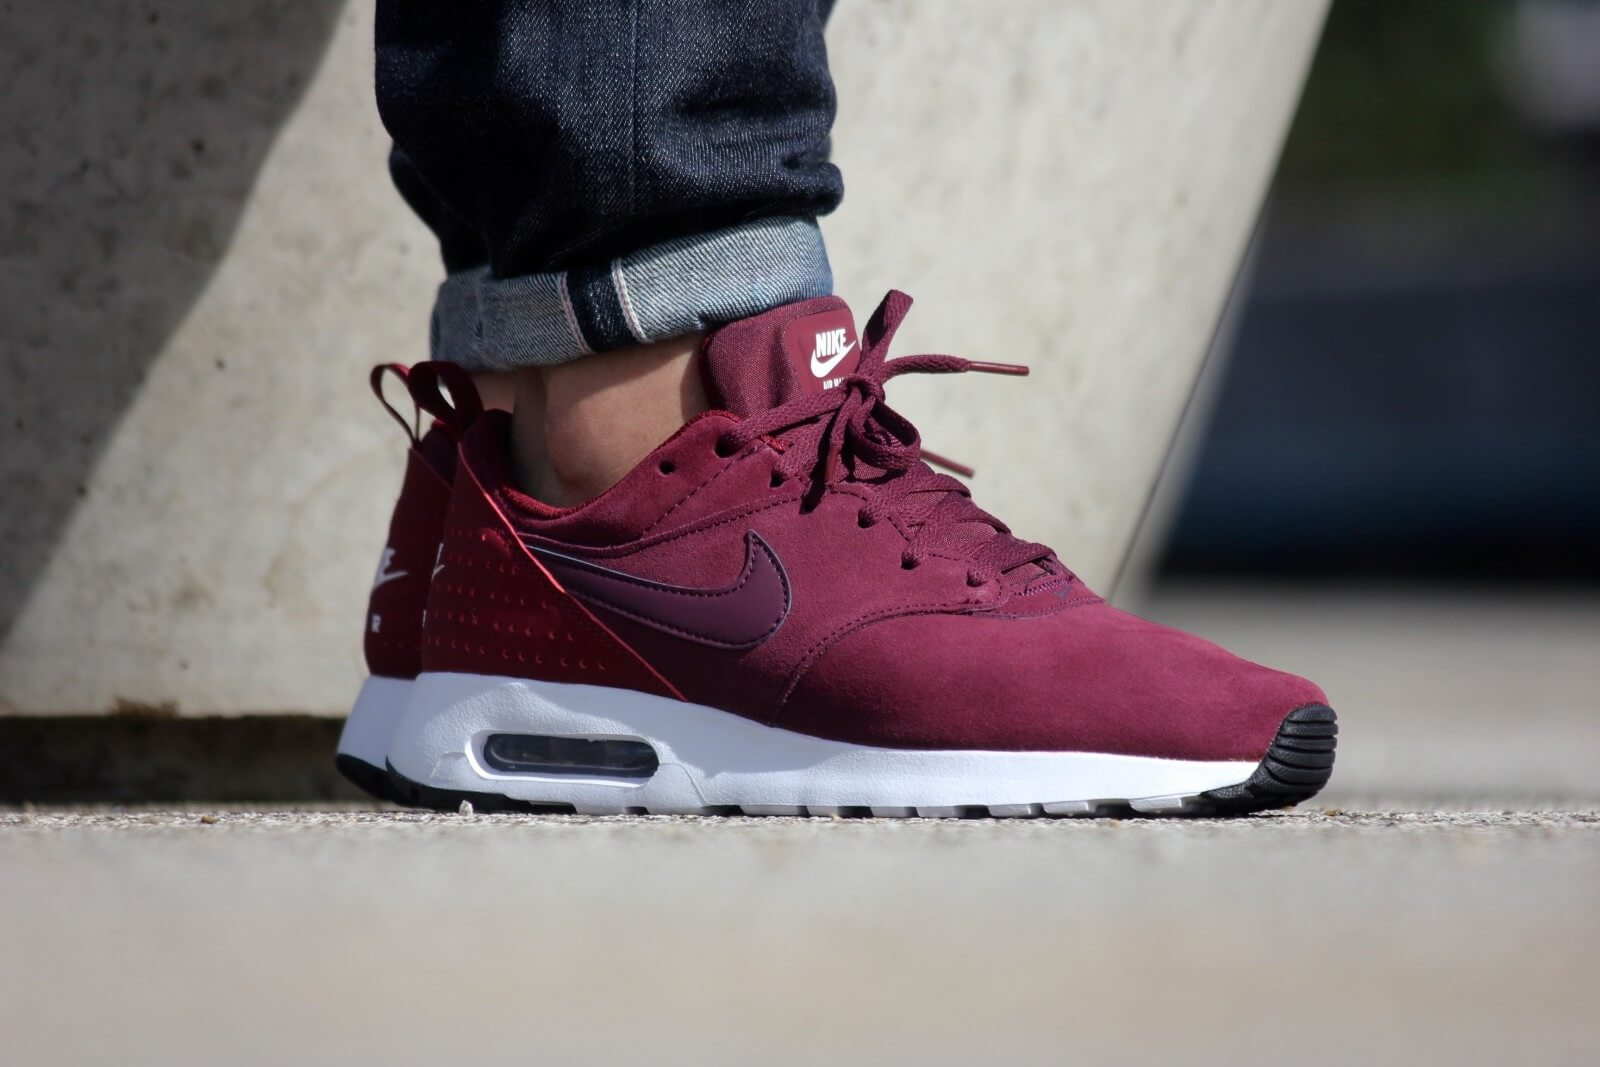 Nike Air Max Tavas LTR Night MaroonTeam Red Sail 802611 602